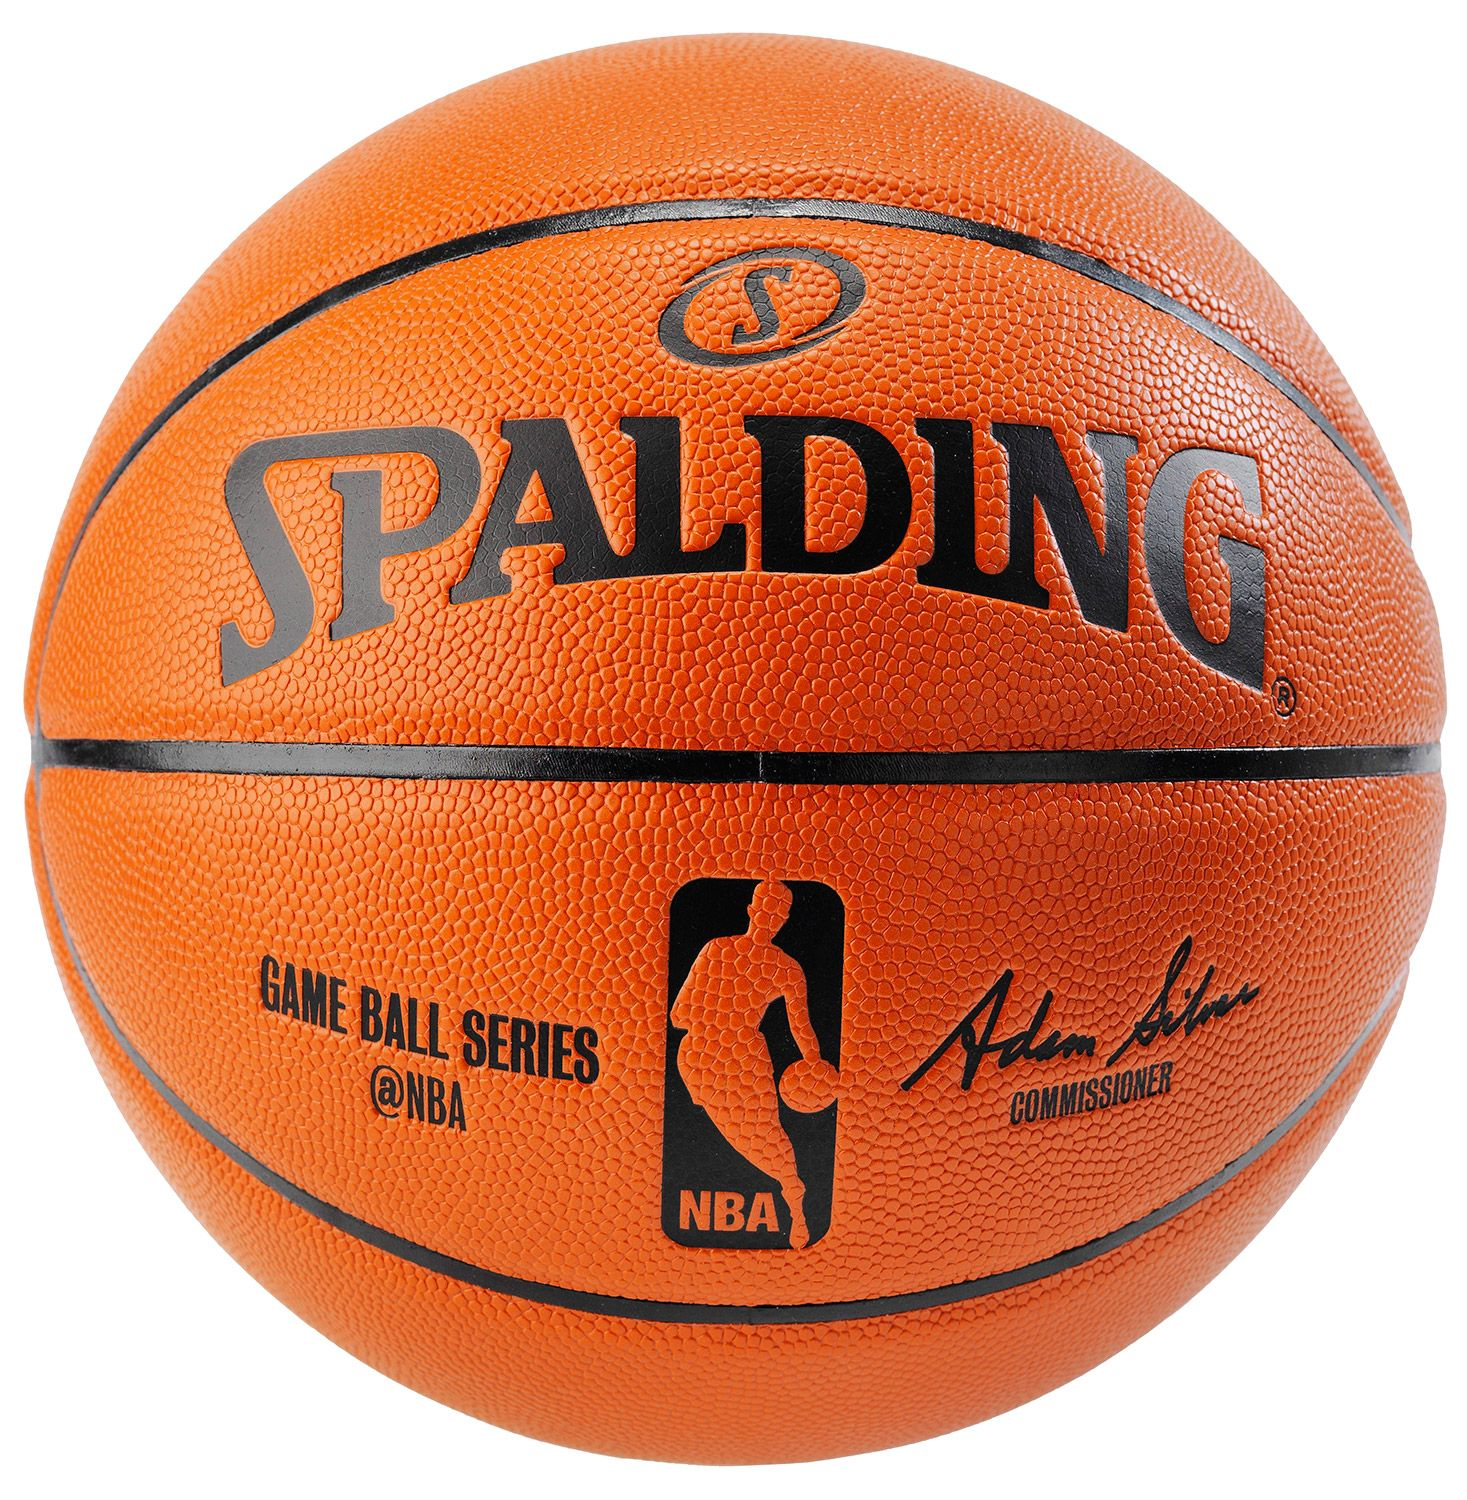 Spalding Nba Replica Official Basketball 295-7881